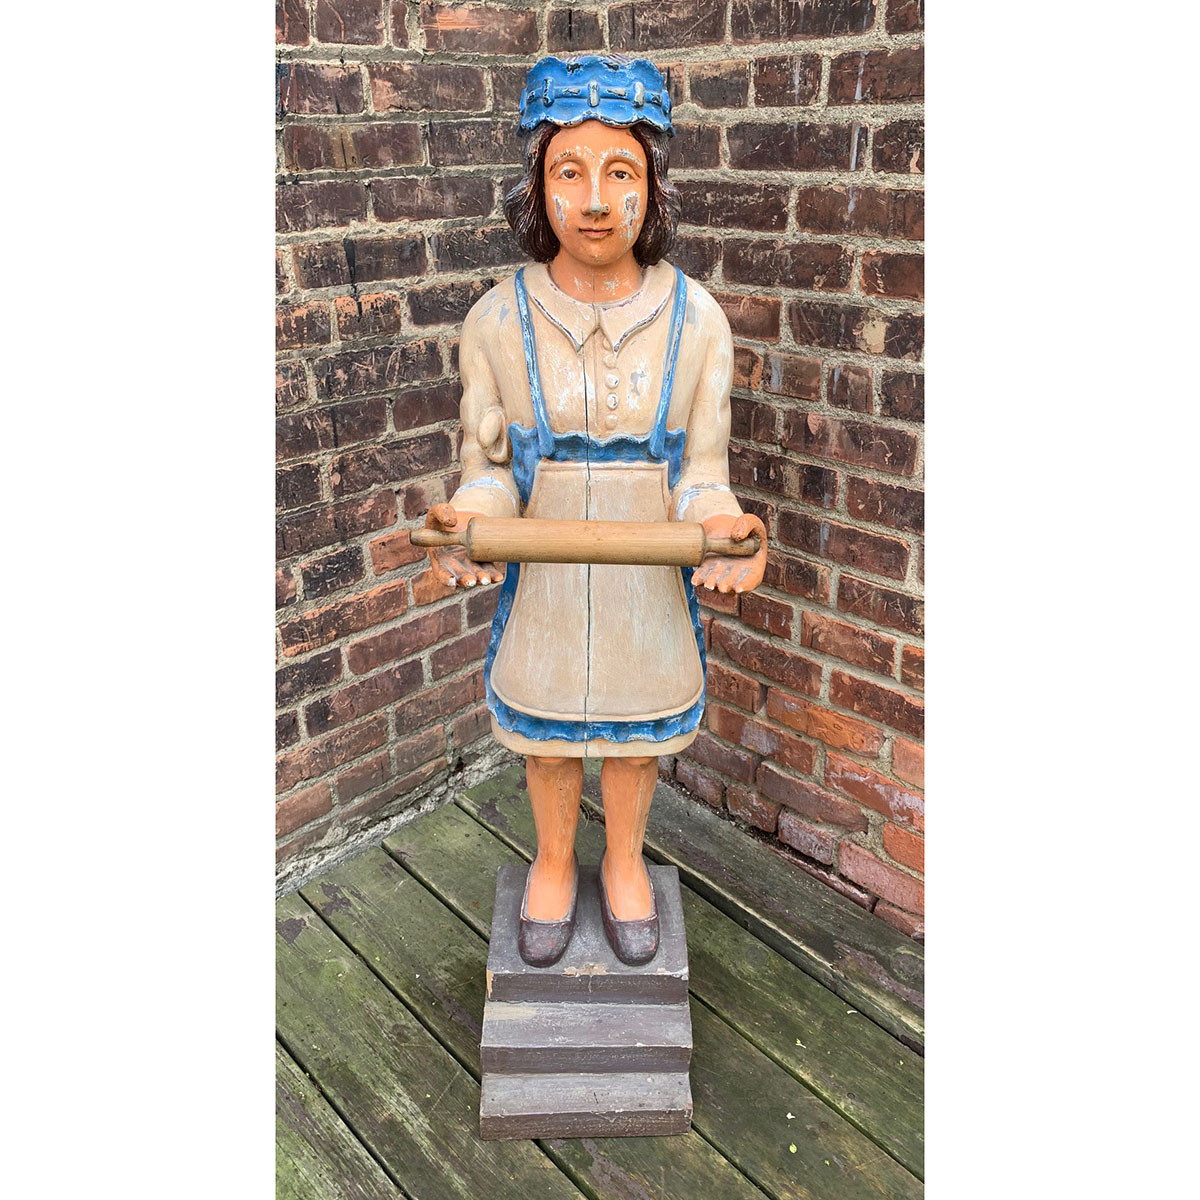 A21065 - Antique Wood Carved Woman Advertising Display